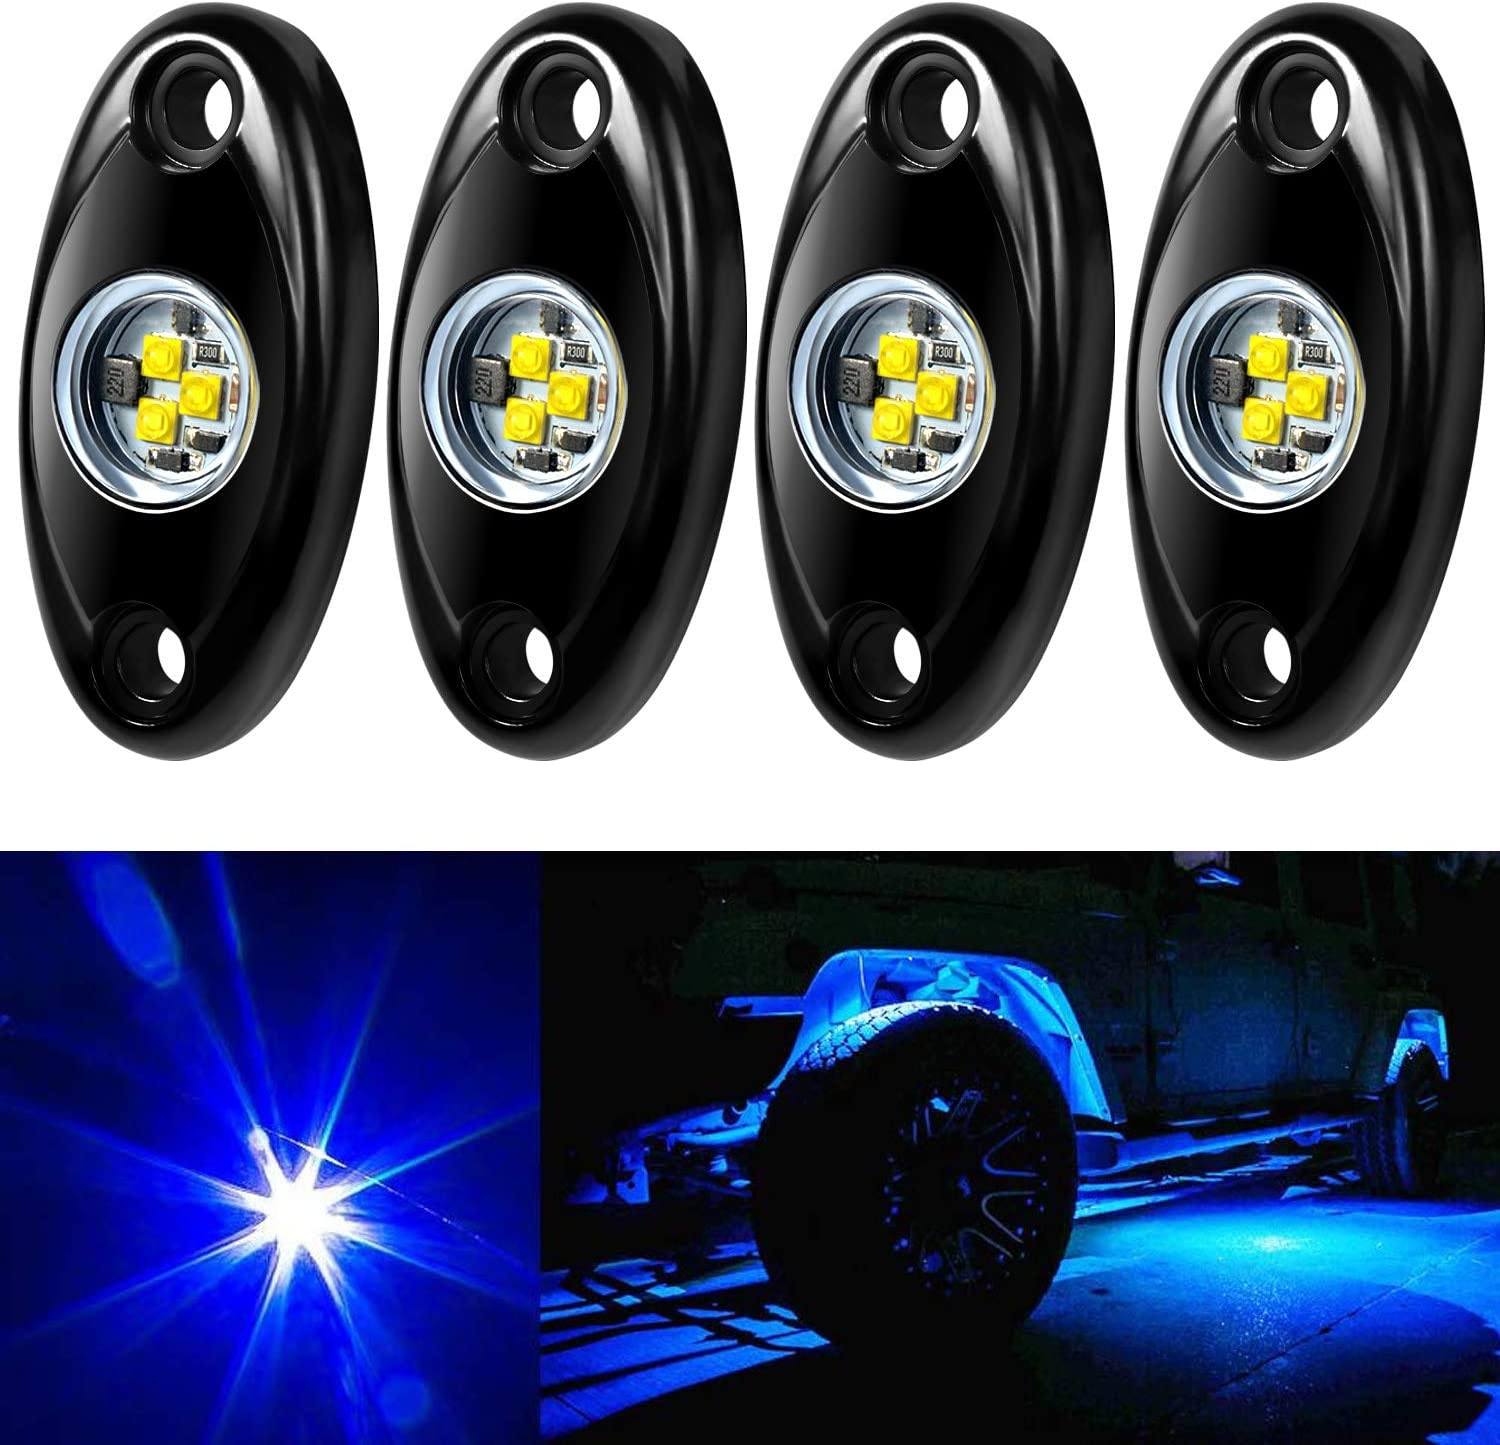 Aukmak 4 Pods LED Rock Light Kit famous SUV Offroad Tr ATV Jeep for Car Max 54% OFF